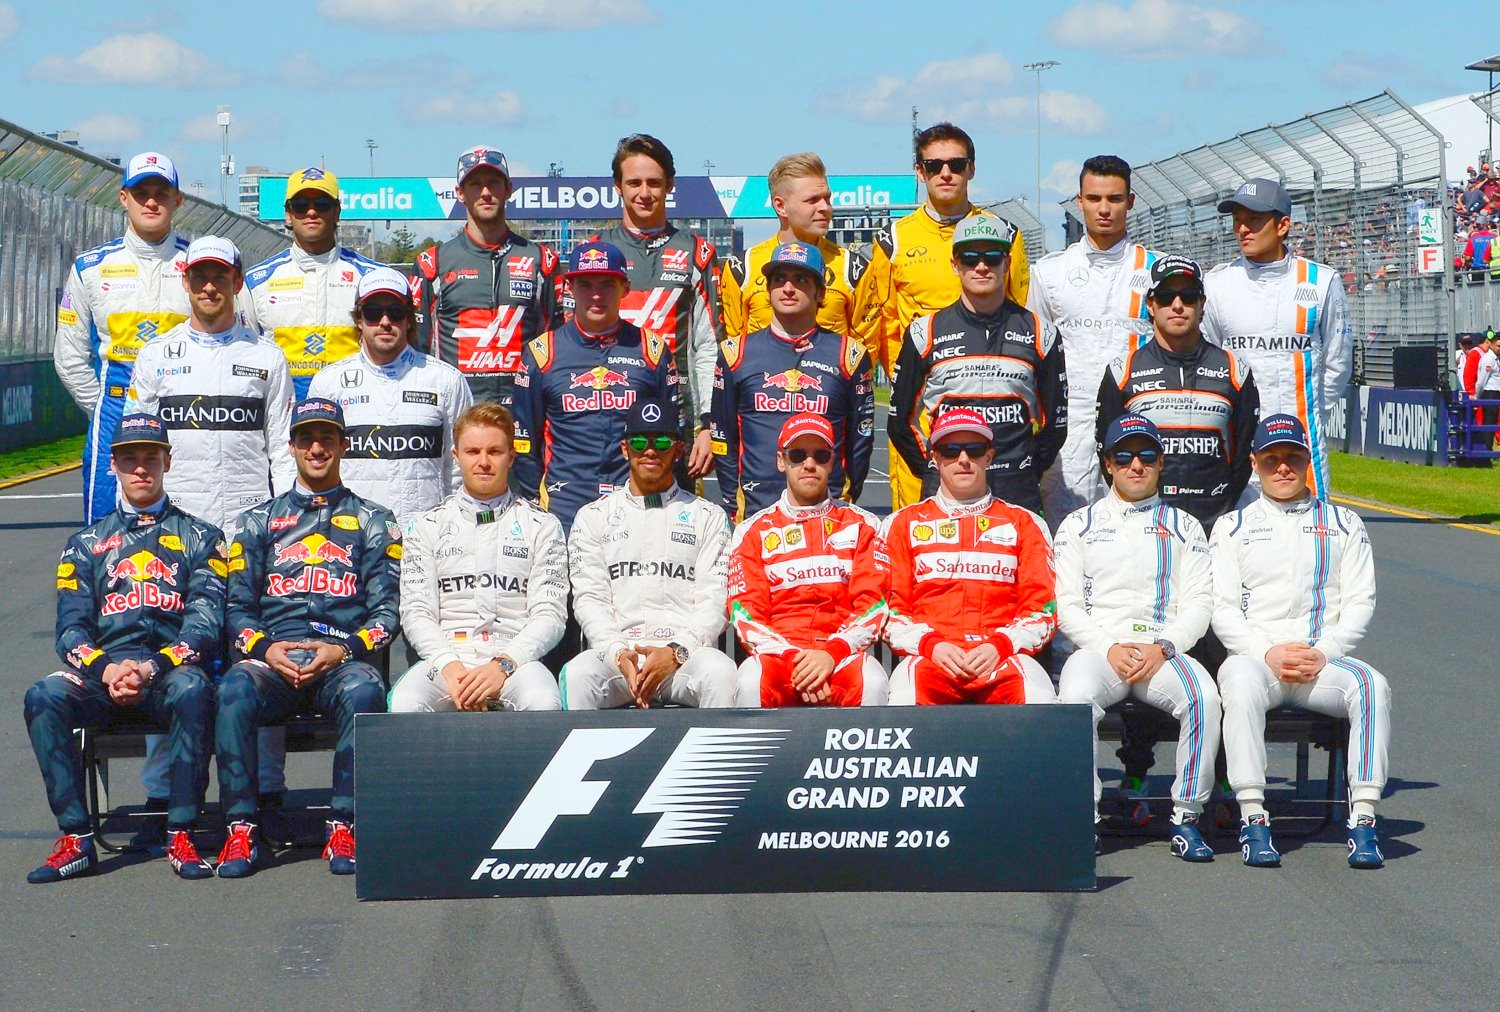 F1 governance will not change for now. Drivers will have zero say